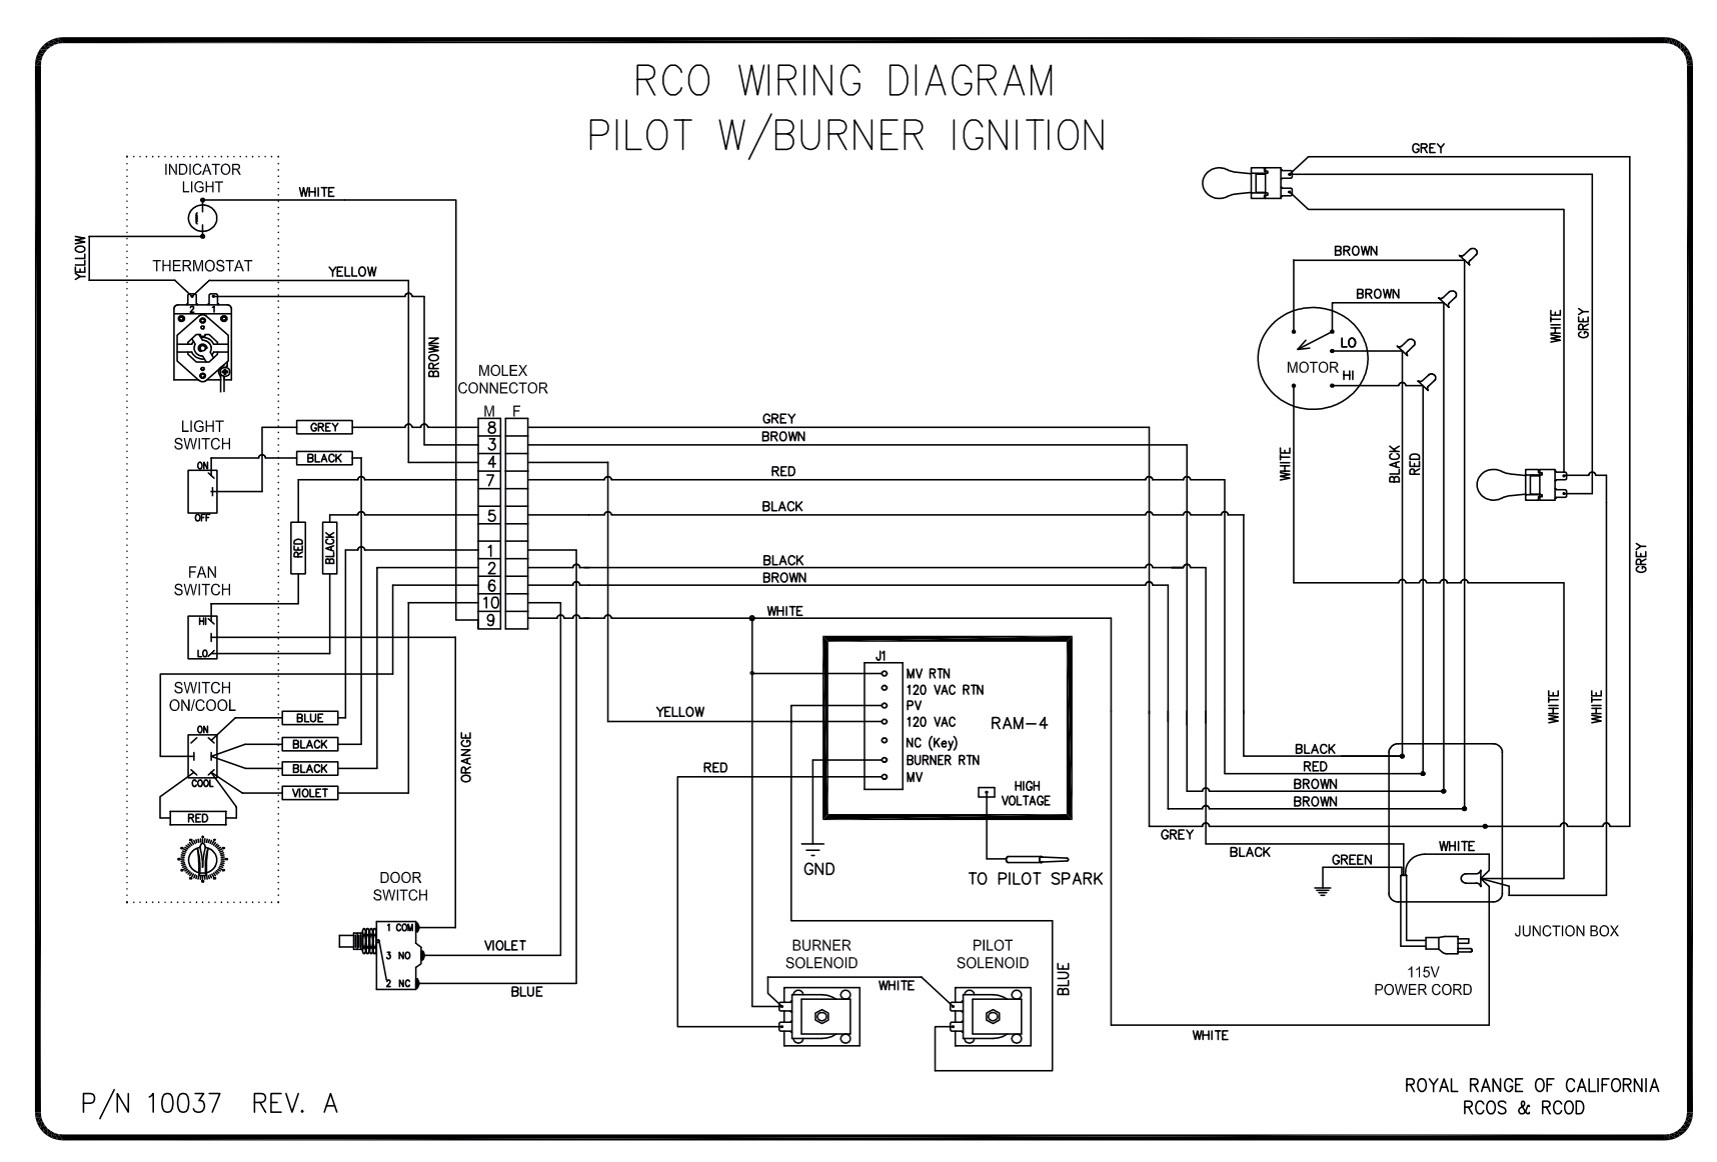 Wiring Diagrams Royal Range Of California 220 110 3ph Panel Diagram Rco Pilot With Burner Ignition